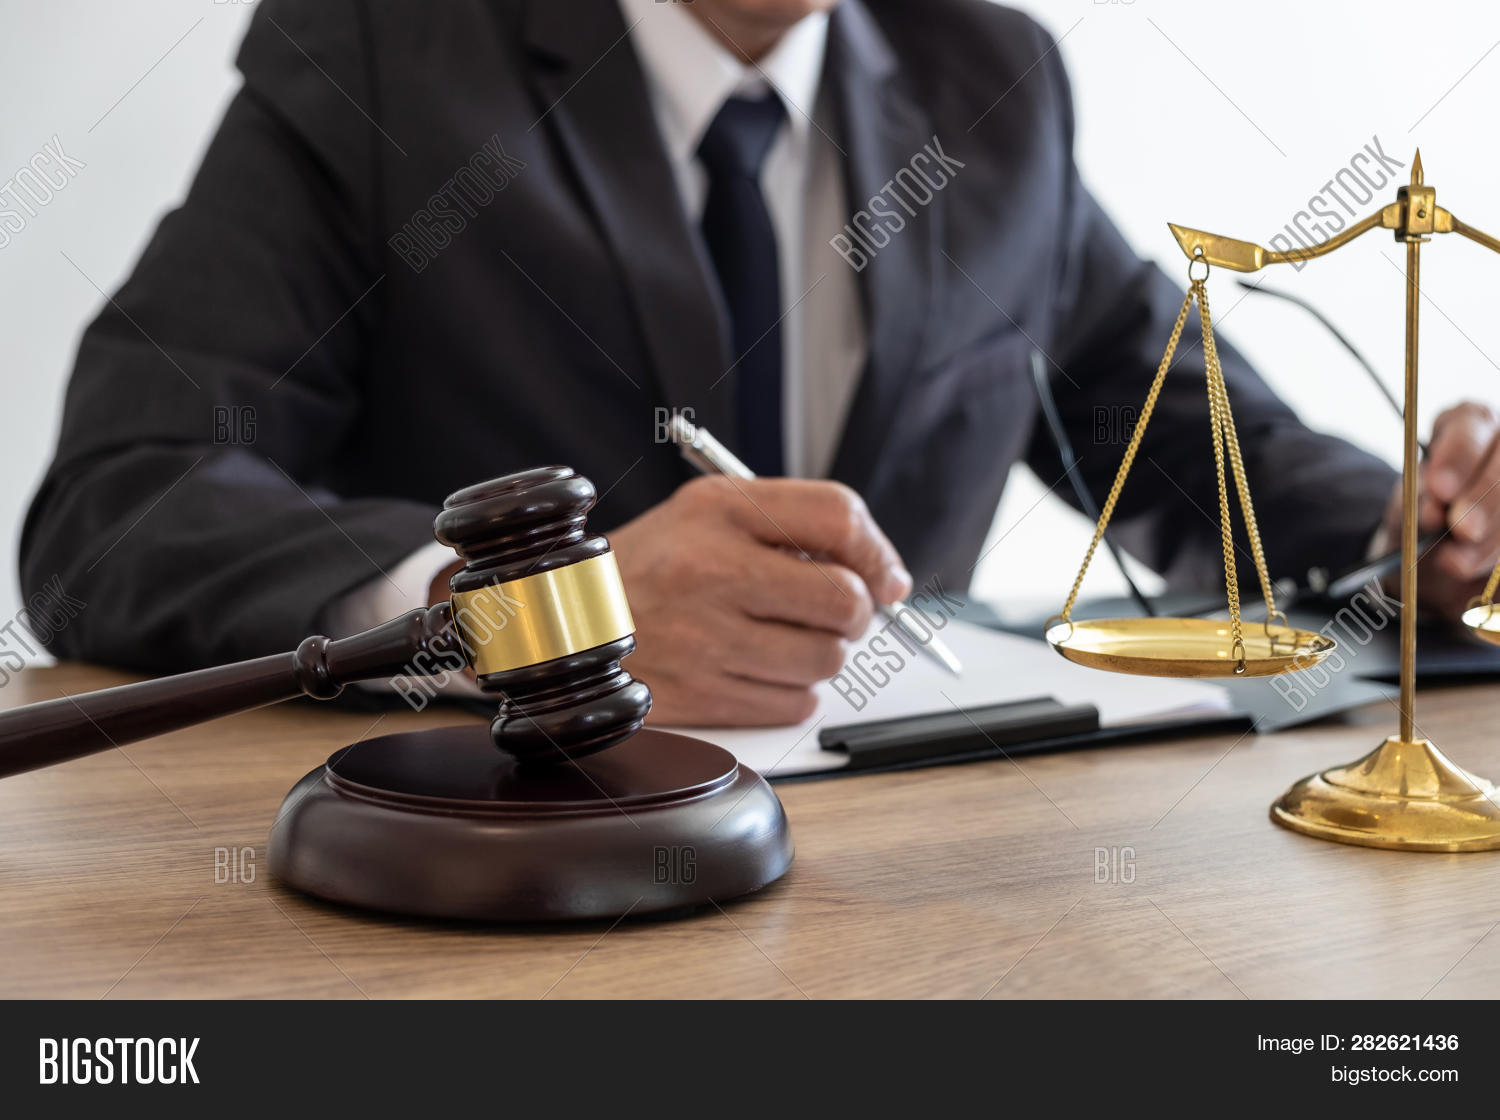 advice,advisor,advocate,agreement,attorney,auction,authority,balance,barrister,book,business,communication,consult,consultant,contract,counselor,court,courthouse,courtroom,criminal,document,equality,estate,fairness,firm,gavel,hammer,instructive,judge,judgement,judiciary,jurisprudence,justice,law,lawyer,legal,legislation,litigation,magistrate,meeting,notary,of,professional,prosecution,real,scale,tribunal,verdict,working